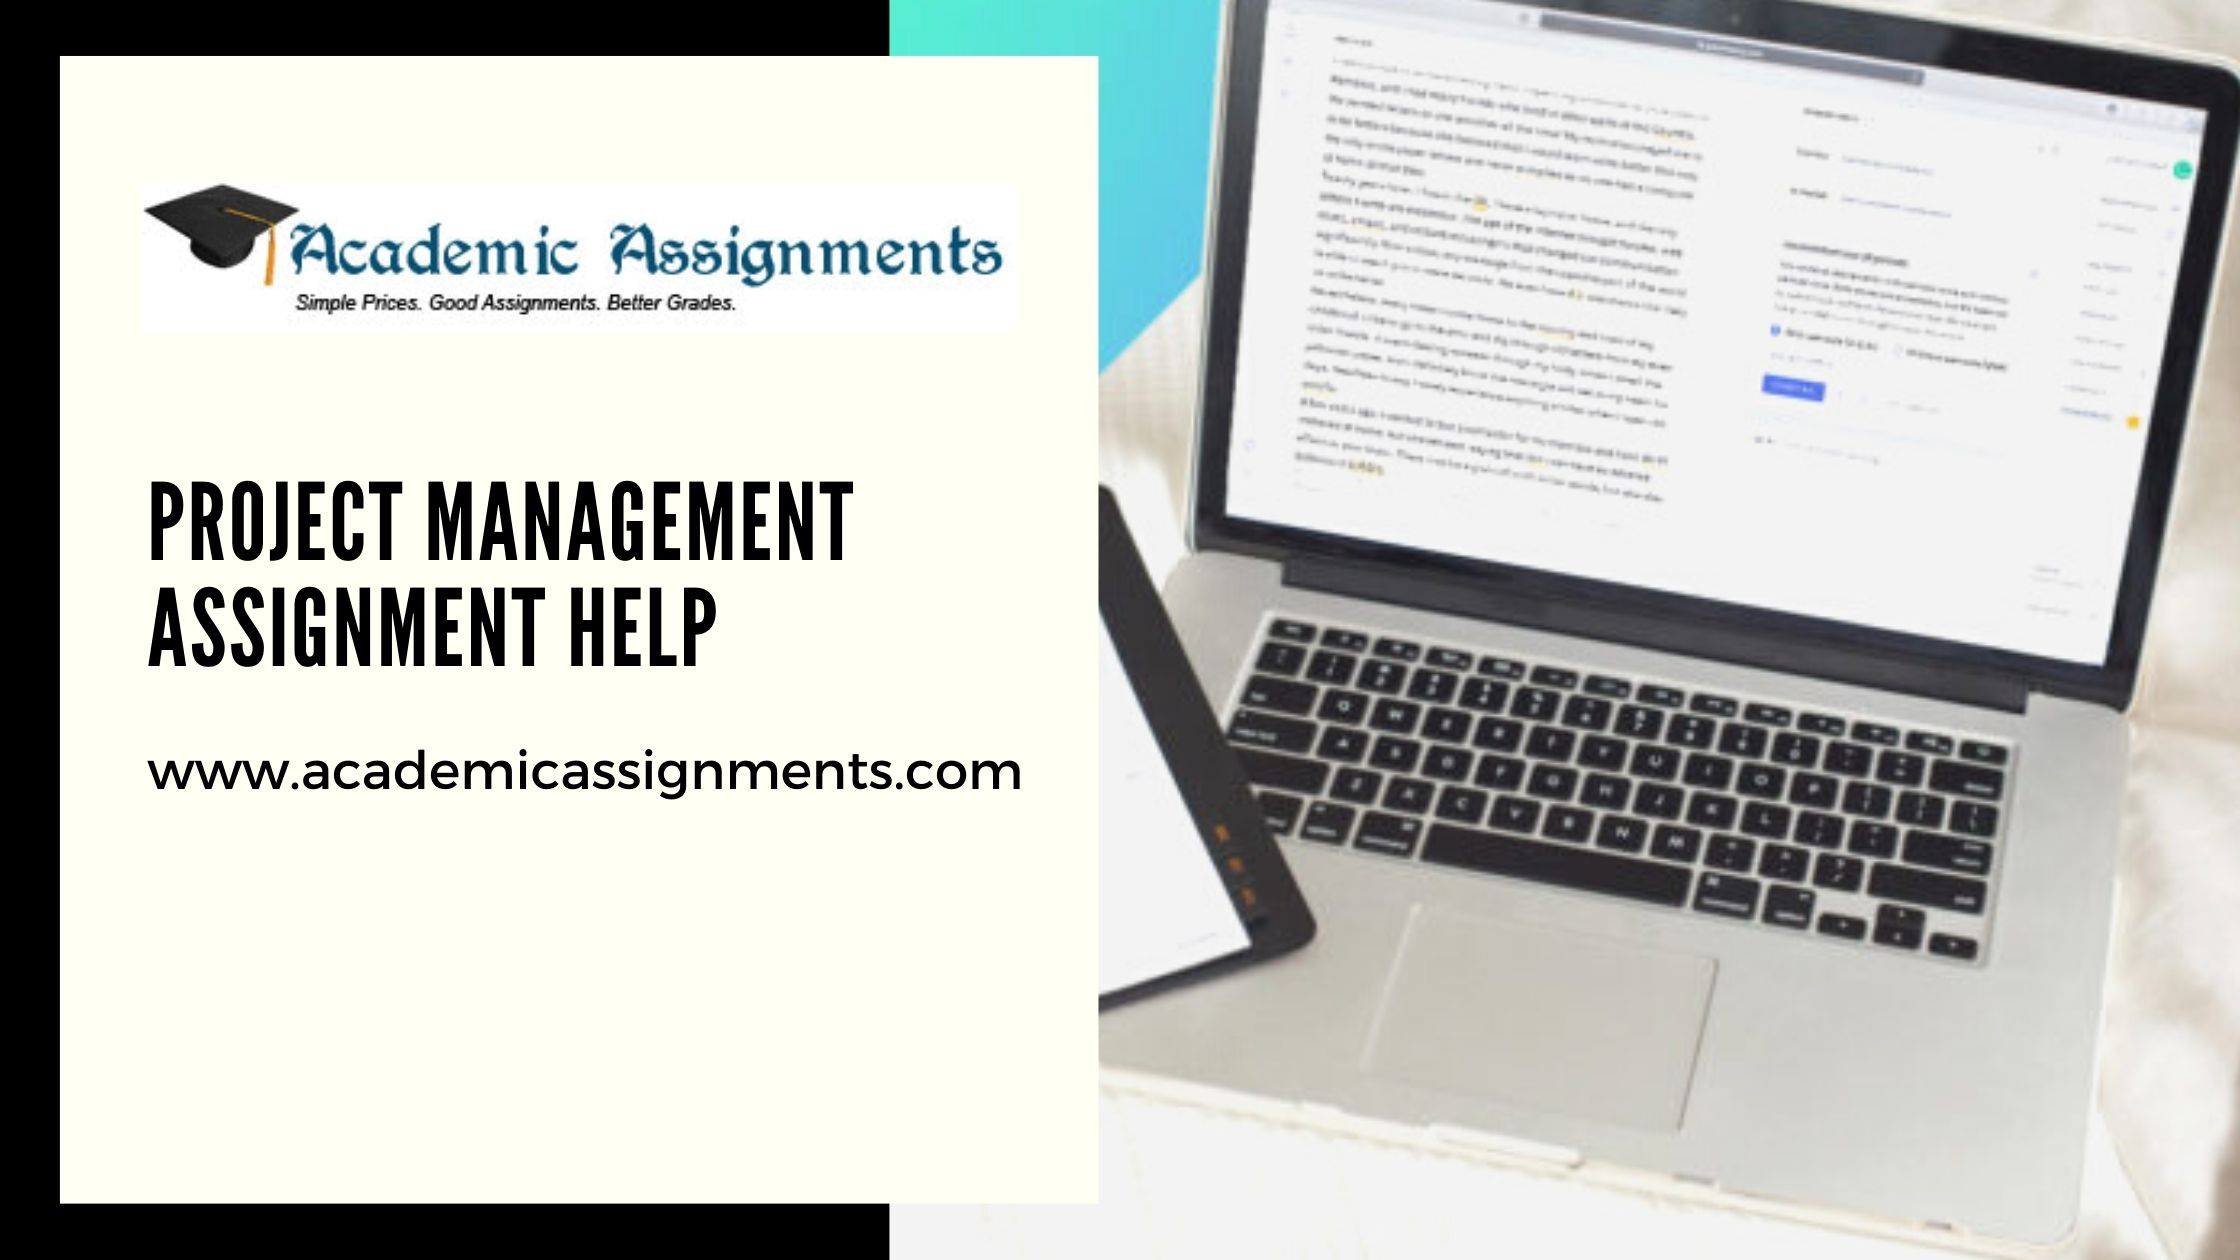 Project Management assignment help (1)